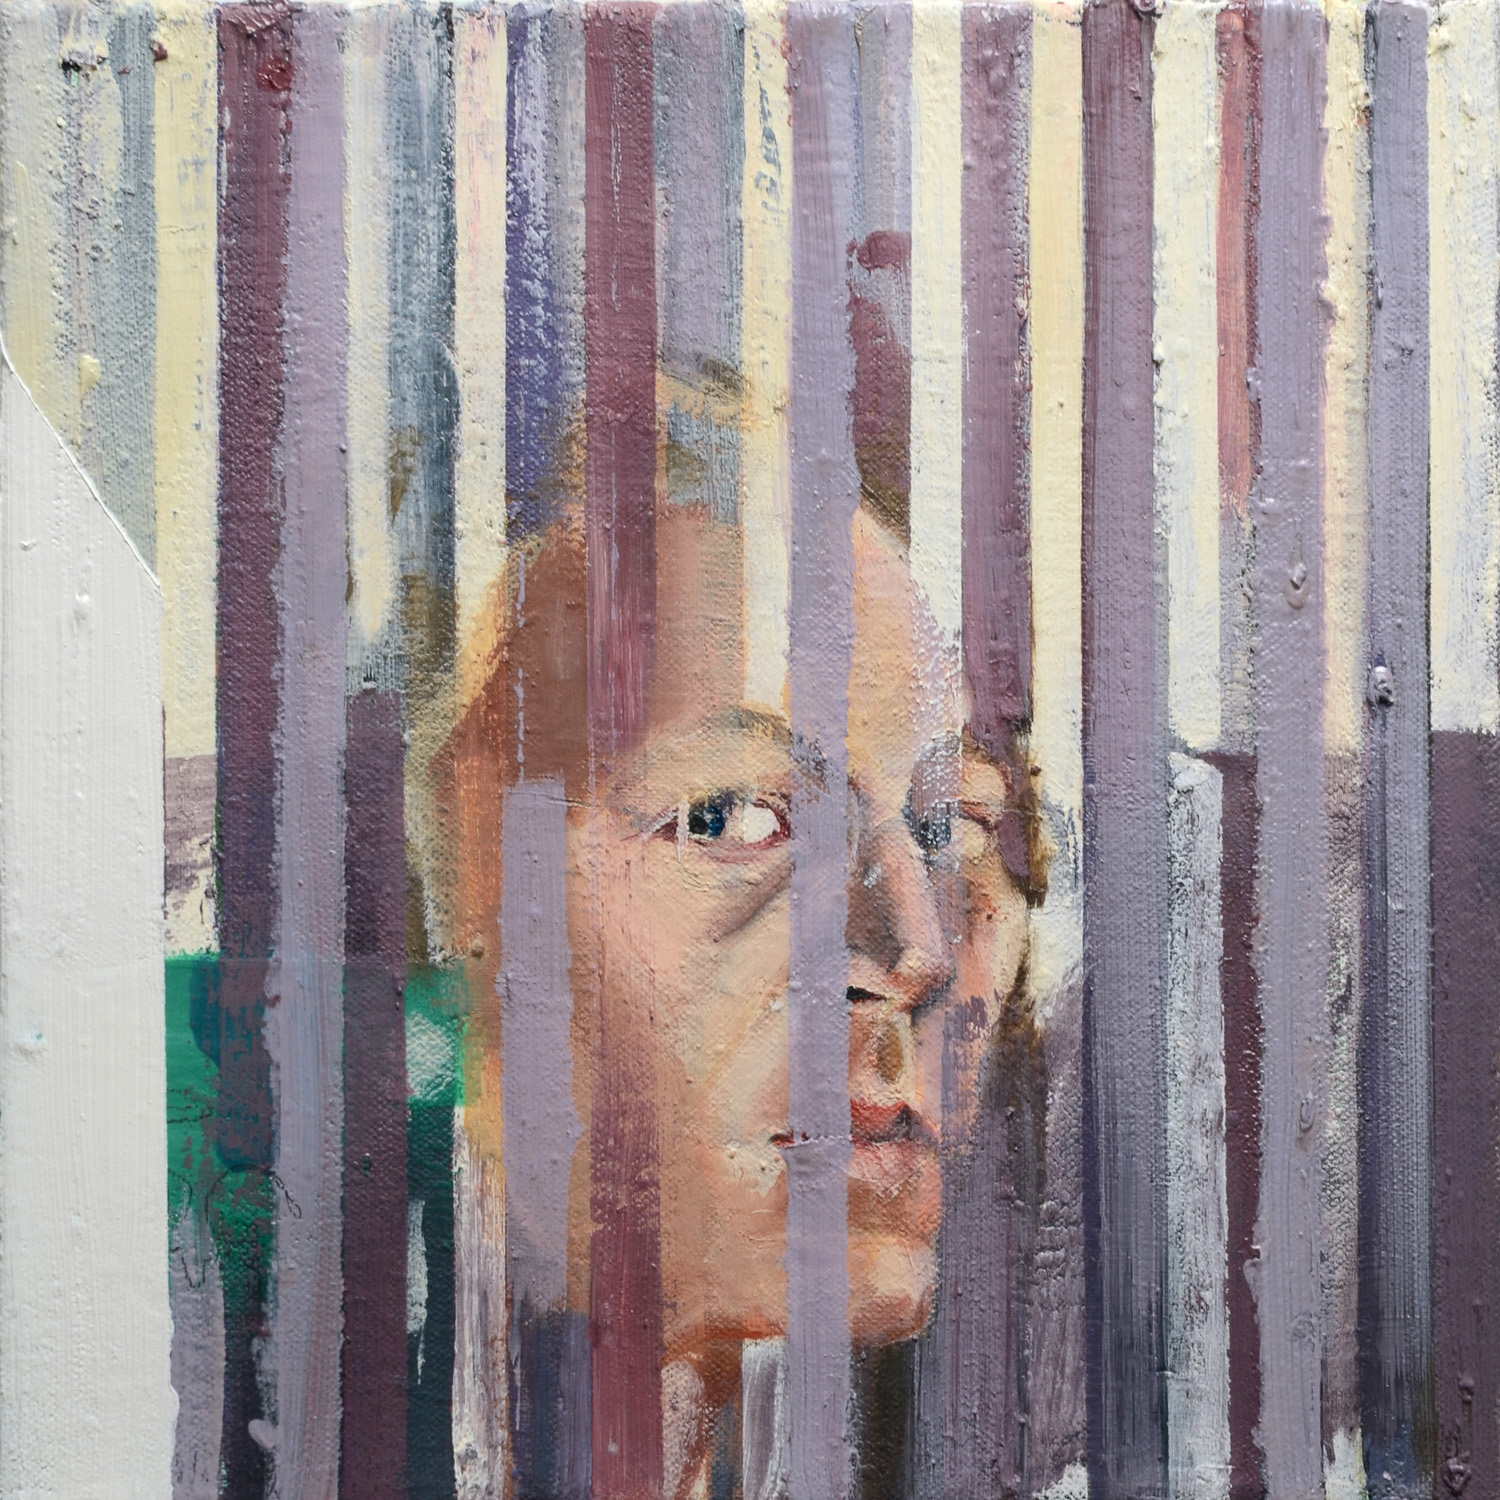 Self Portrait, Oil on canvas, 40x40 cm, 2012